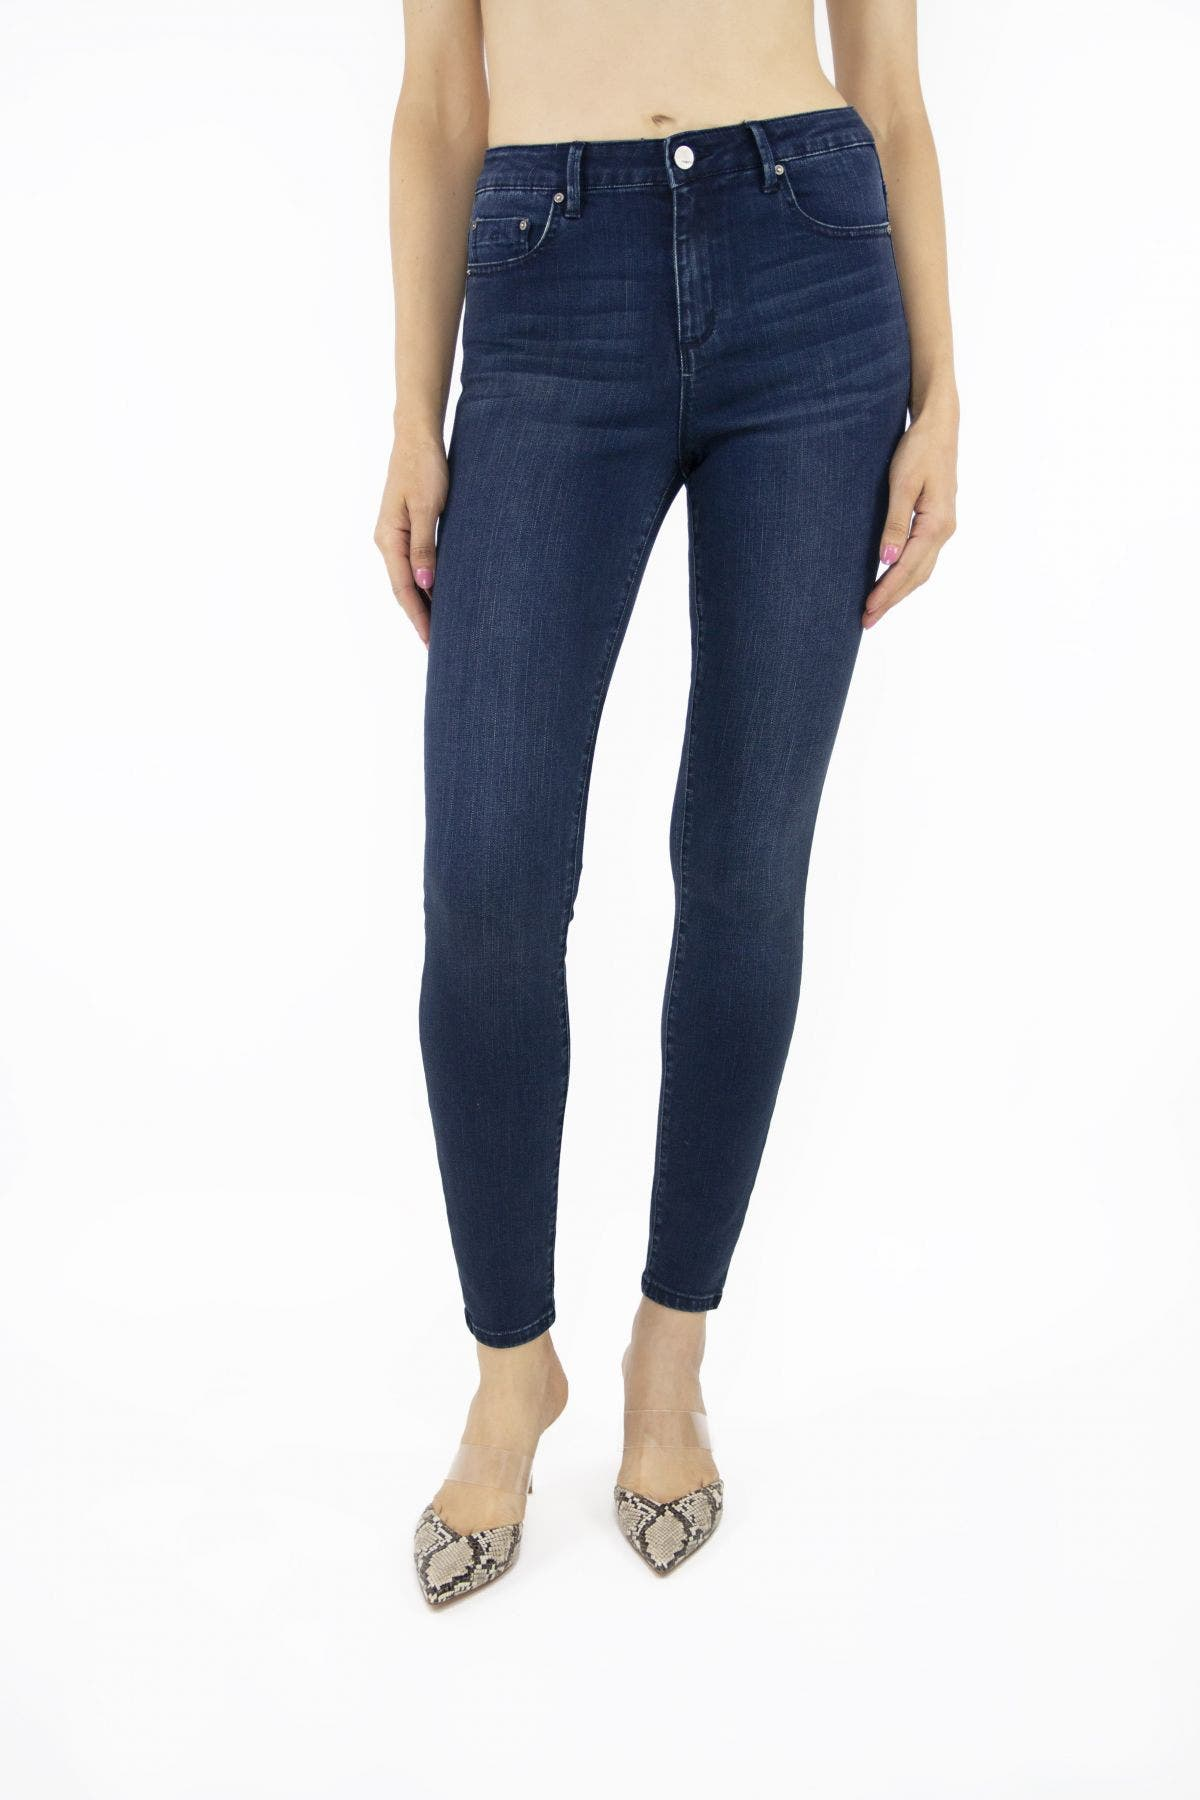 Tractr Jeans Diane Mid-Rise Skinny ♻️